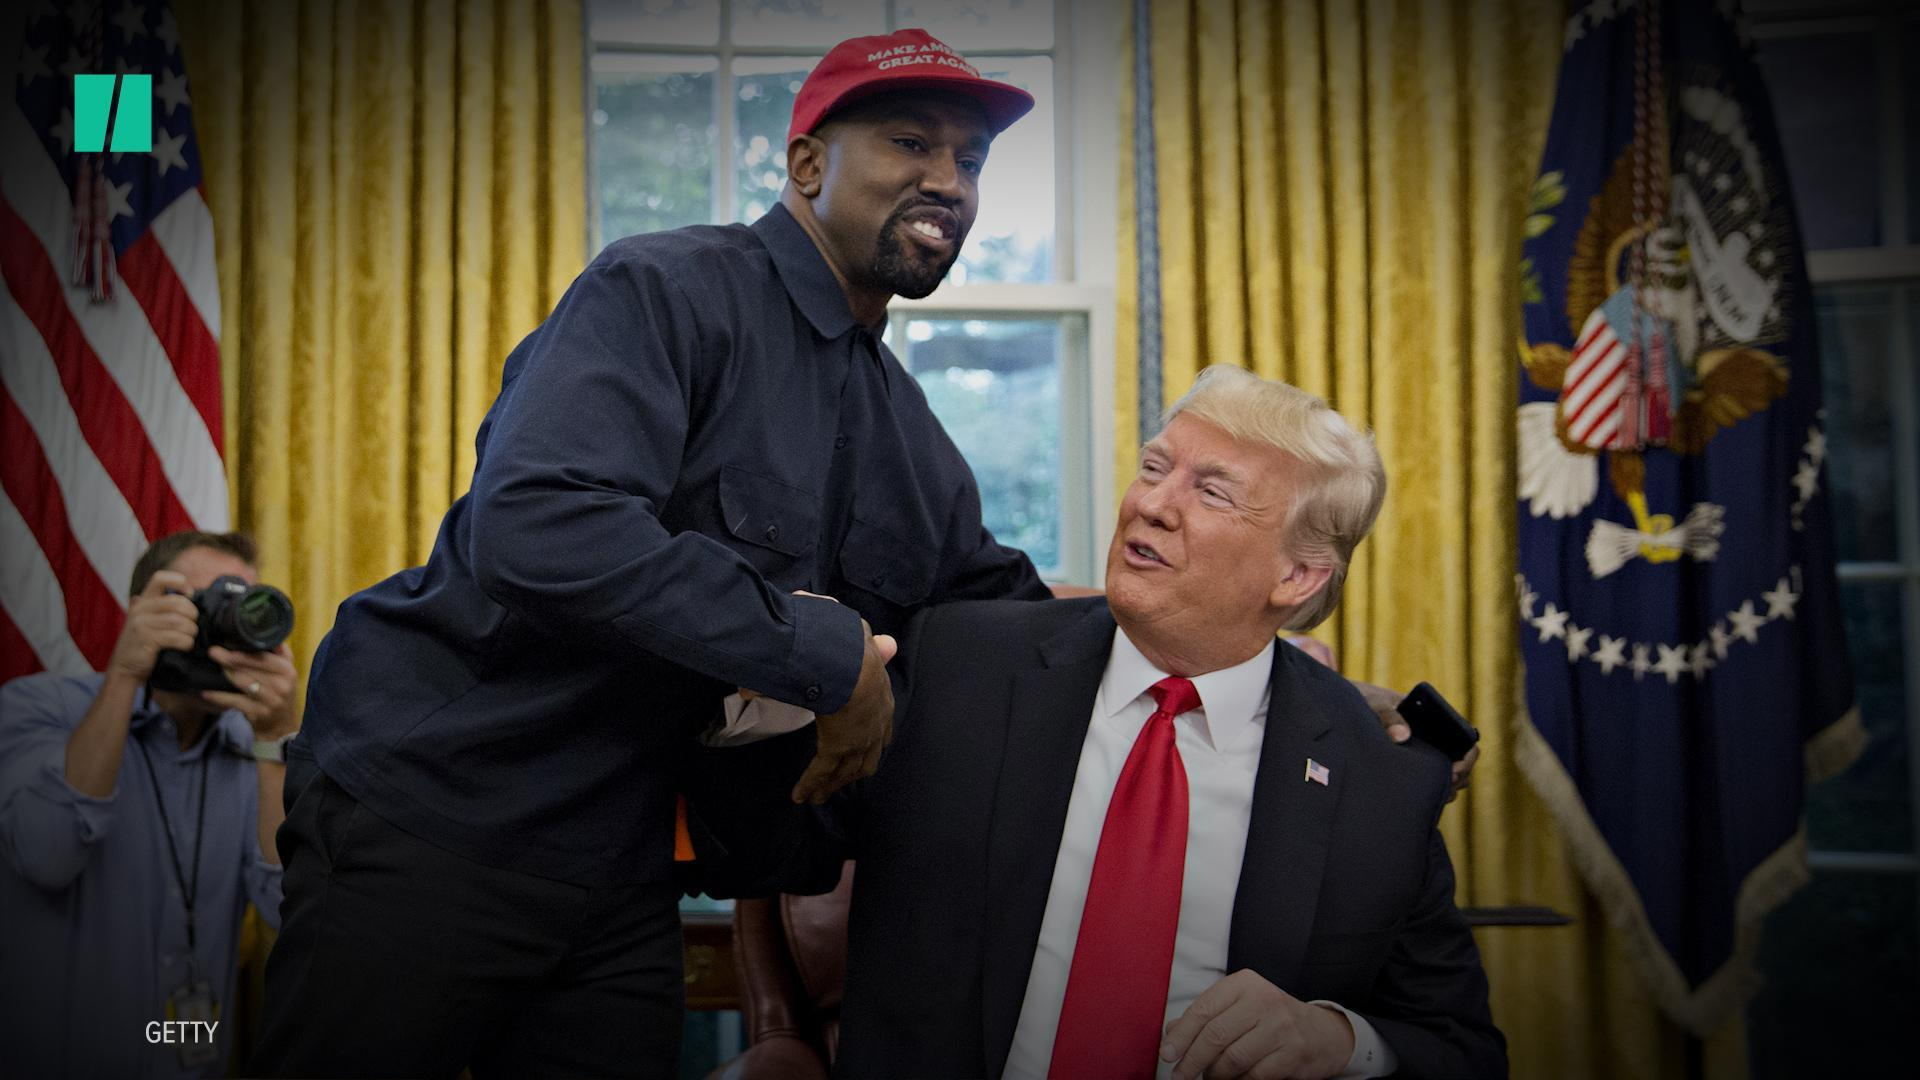 White House Aides 'Hugely Embarrassed' By Trump's Lunch With Kanye: NYT Reporter